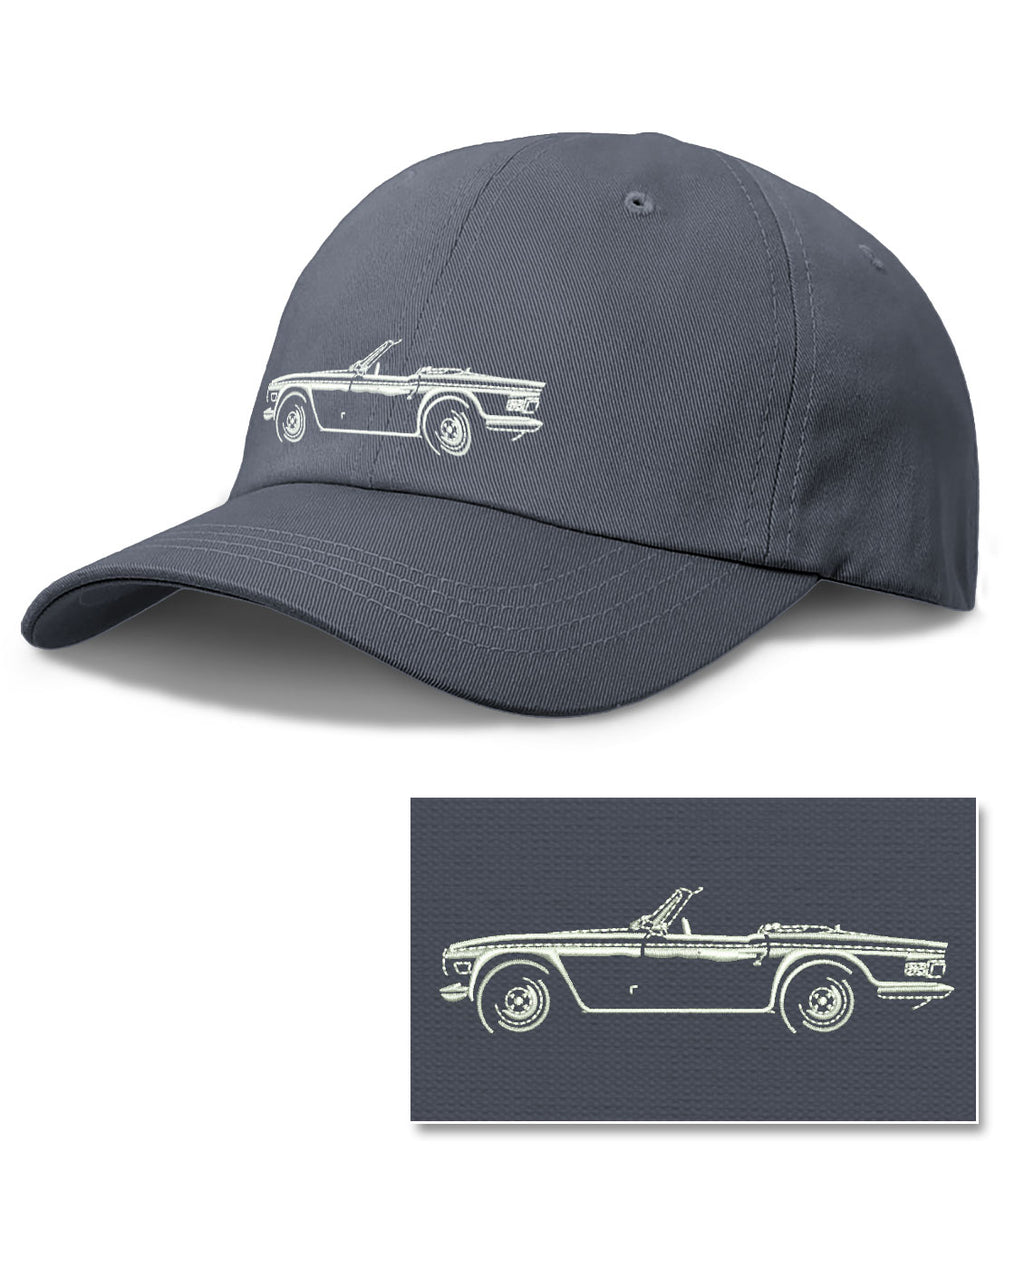 Triumph TR6 Convertible Baseball Cap for Men & Women